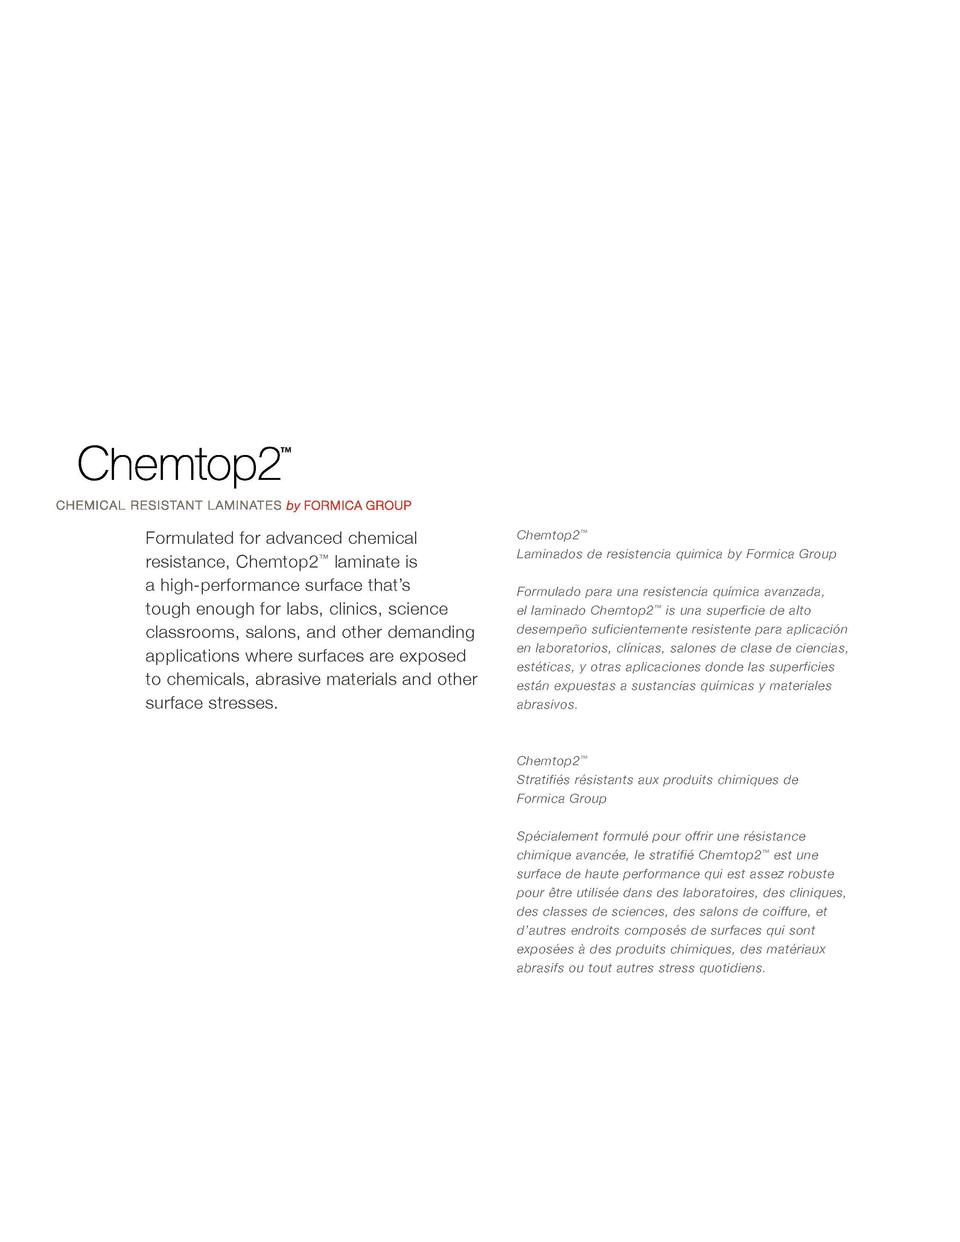 Formulated for advanced chemical resistance, Chemtop2    laminate is a high-performance surface that   s tough enough for ...